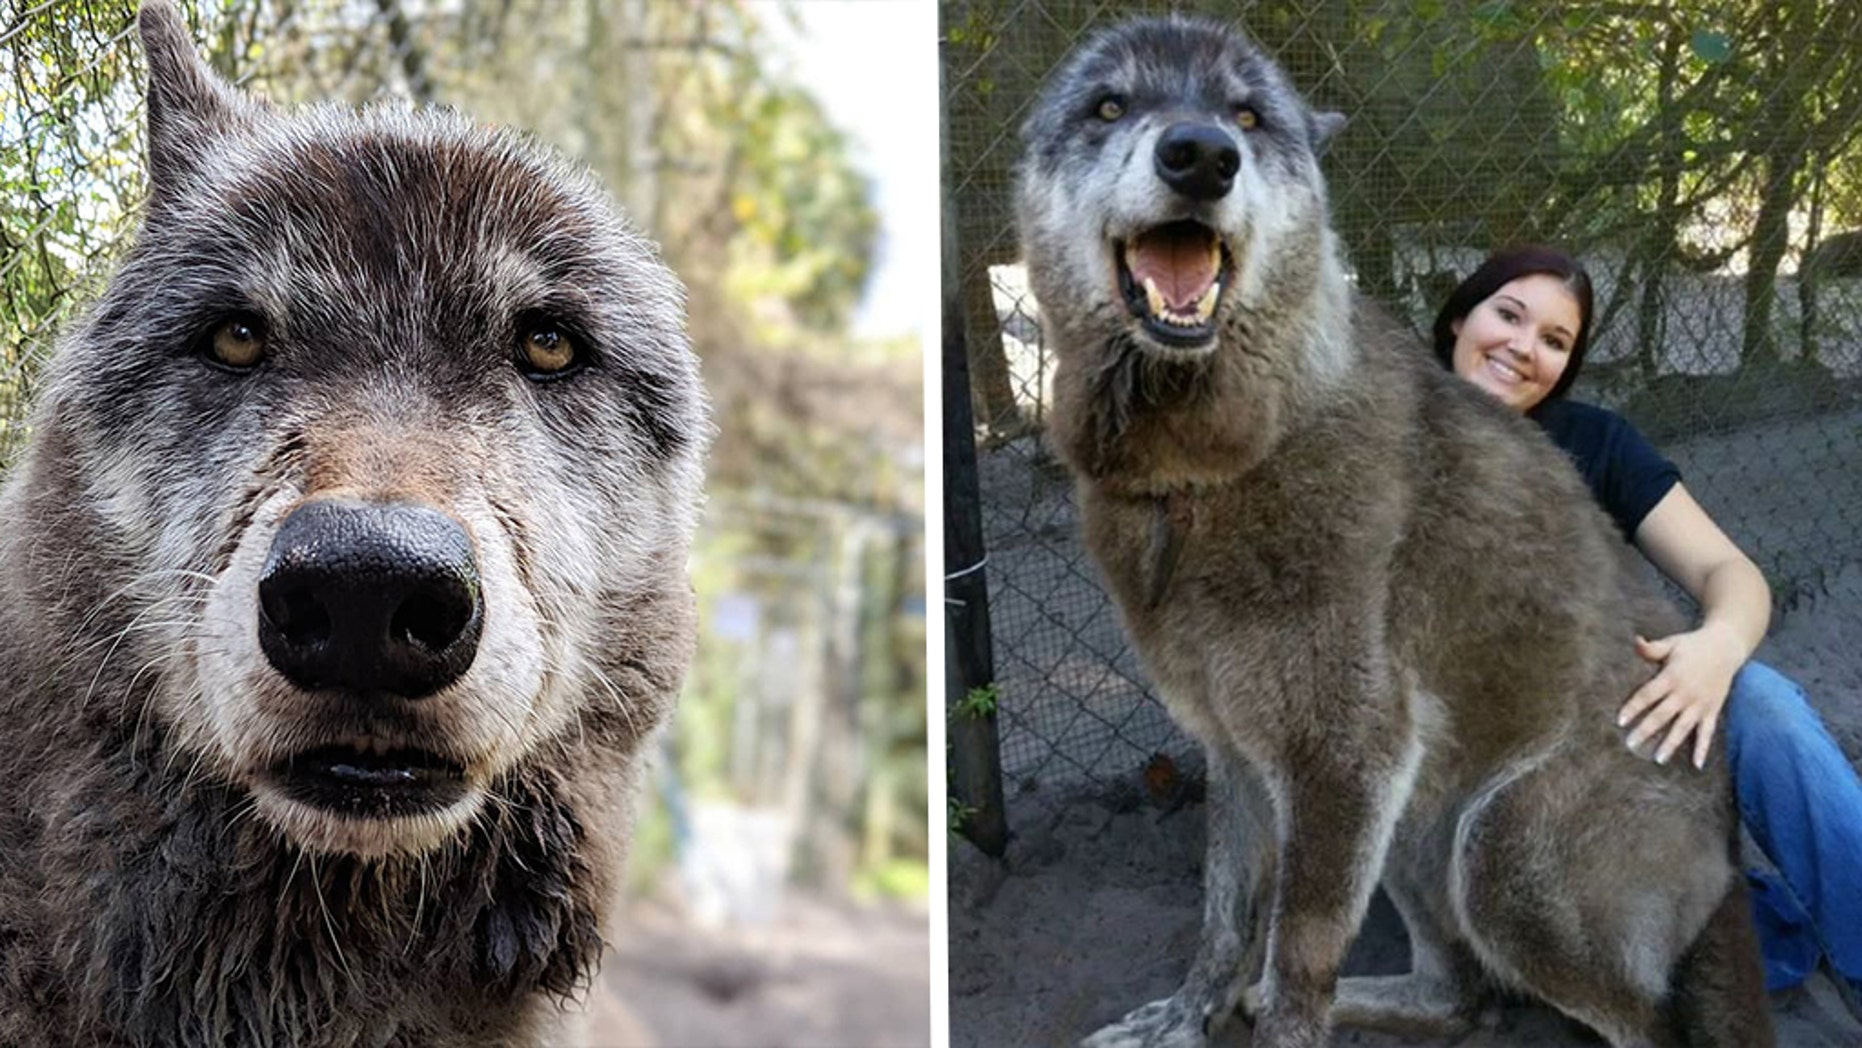 Yuki, a wolfdog hybrid, was rescued by the Shy Wolf Sanctuary in 2008.